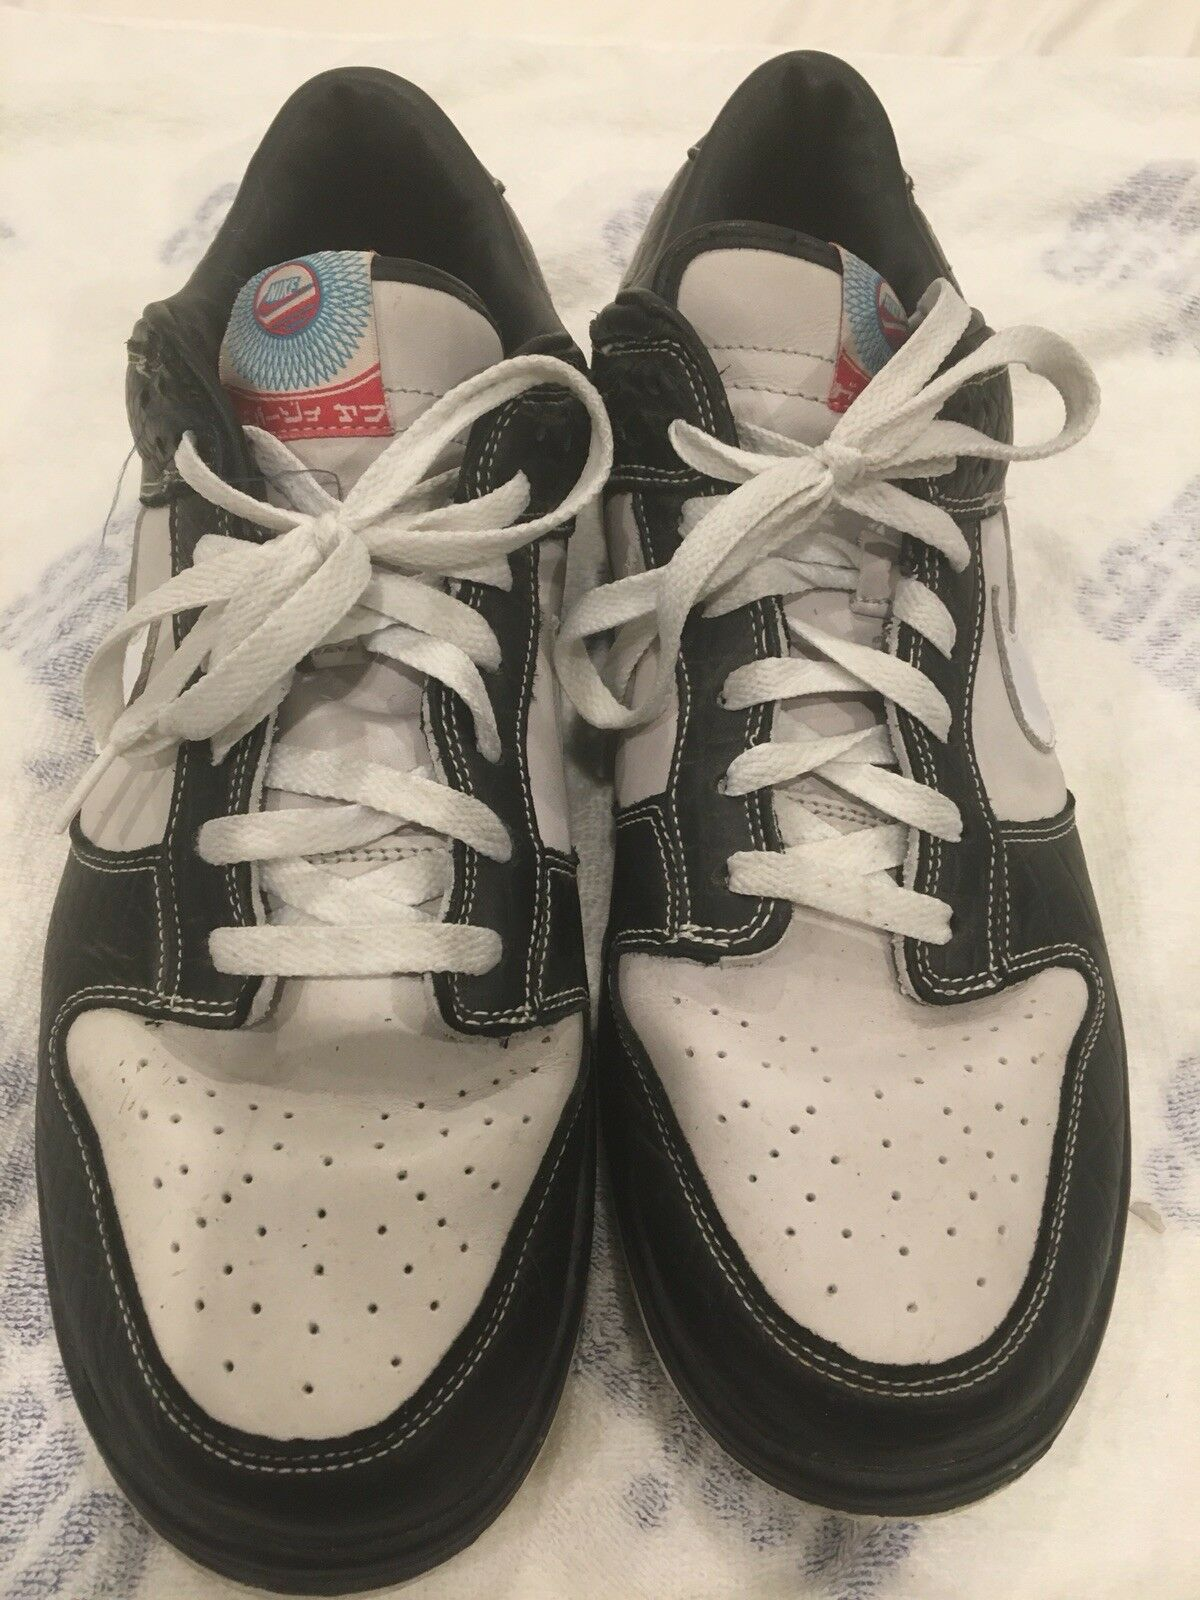 RARE Nike Dunk Low EX ID '07 Leather Crocodile NY  Premium 316894 011 size 13